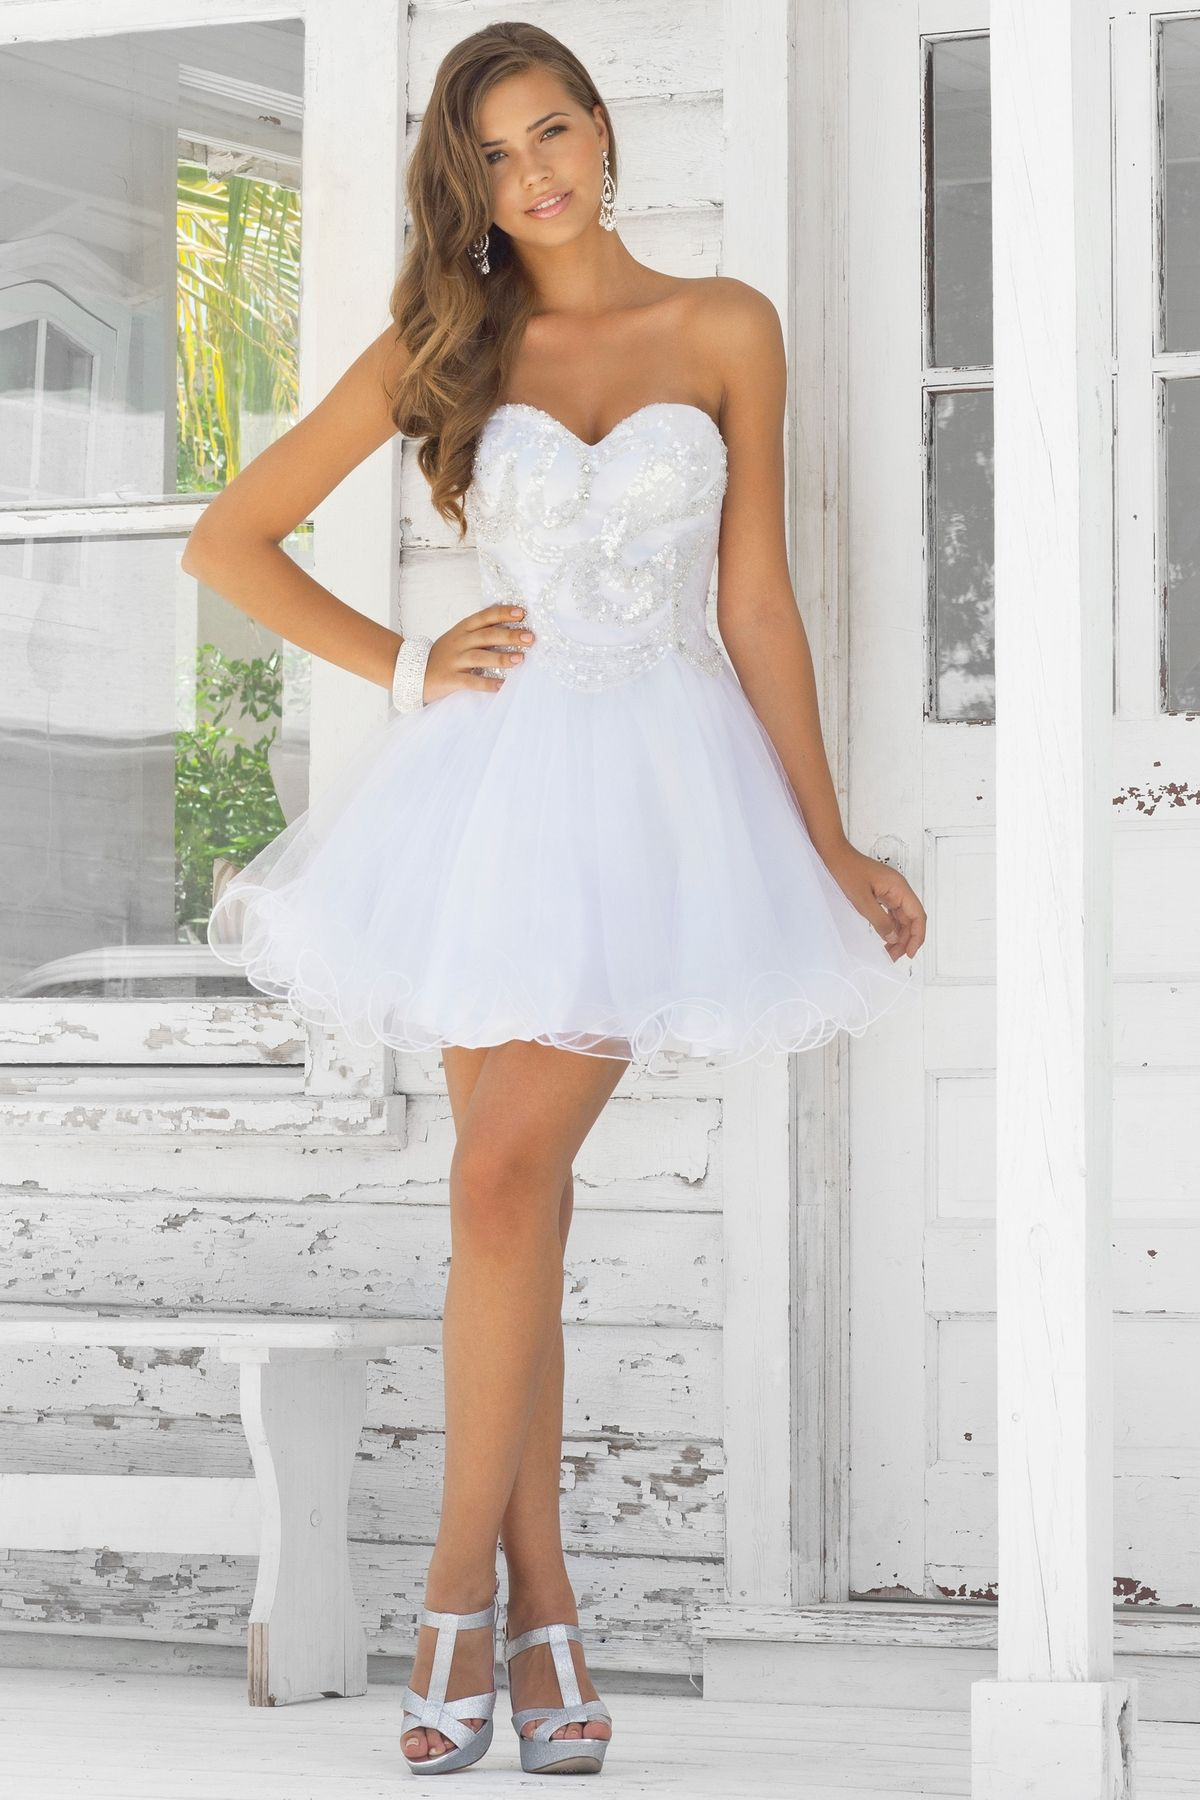 white short prom dresses sale_Prom Dresses_dressesss